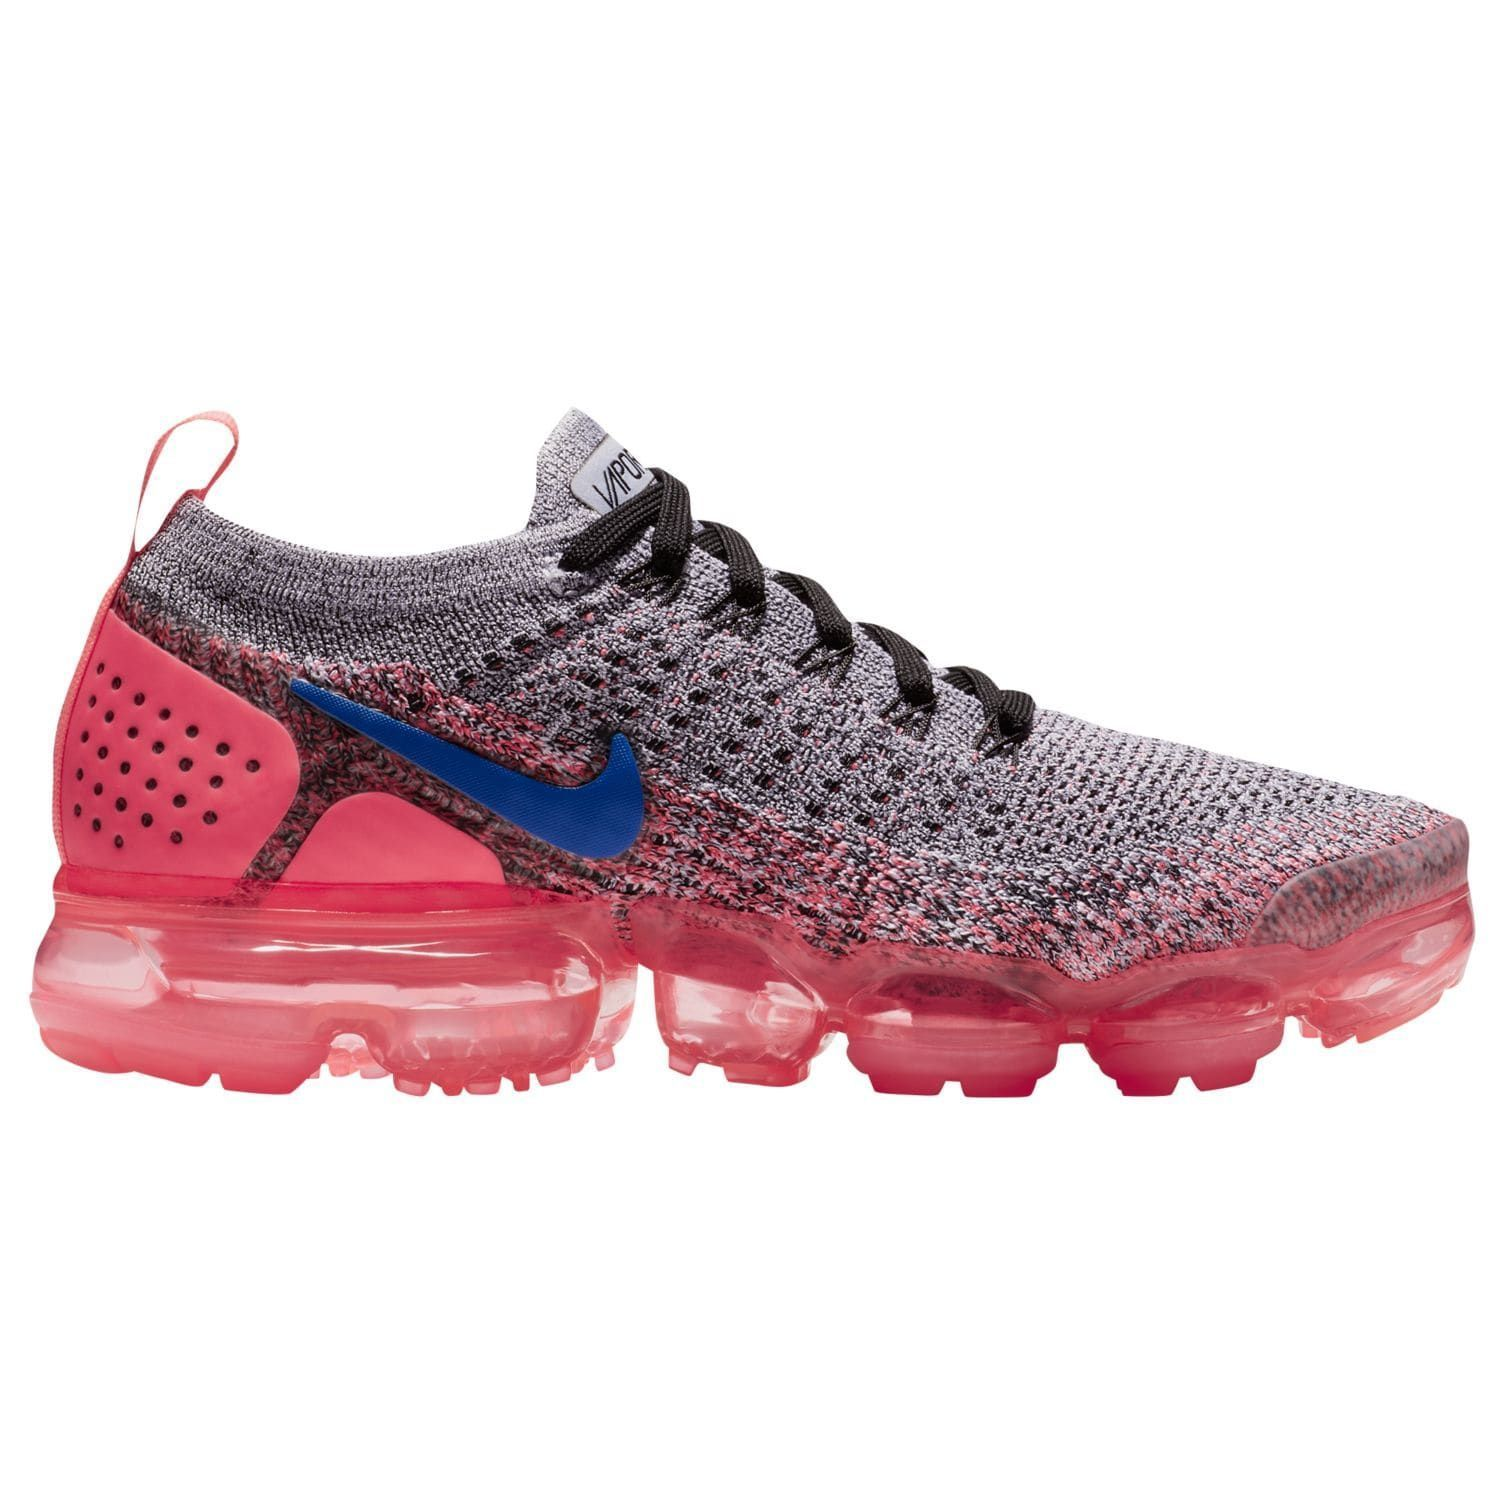 quality design ea748 83e29 Ron Holt on | Running Shoes | Nike air vapormax, Nike ...